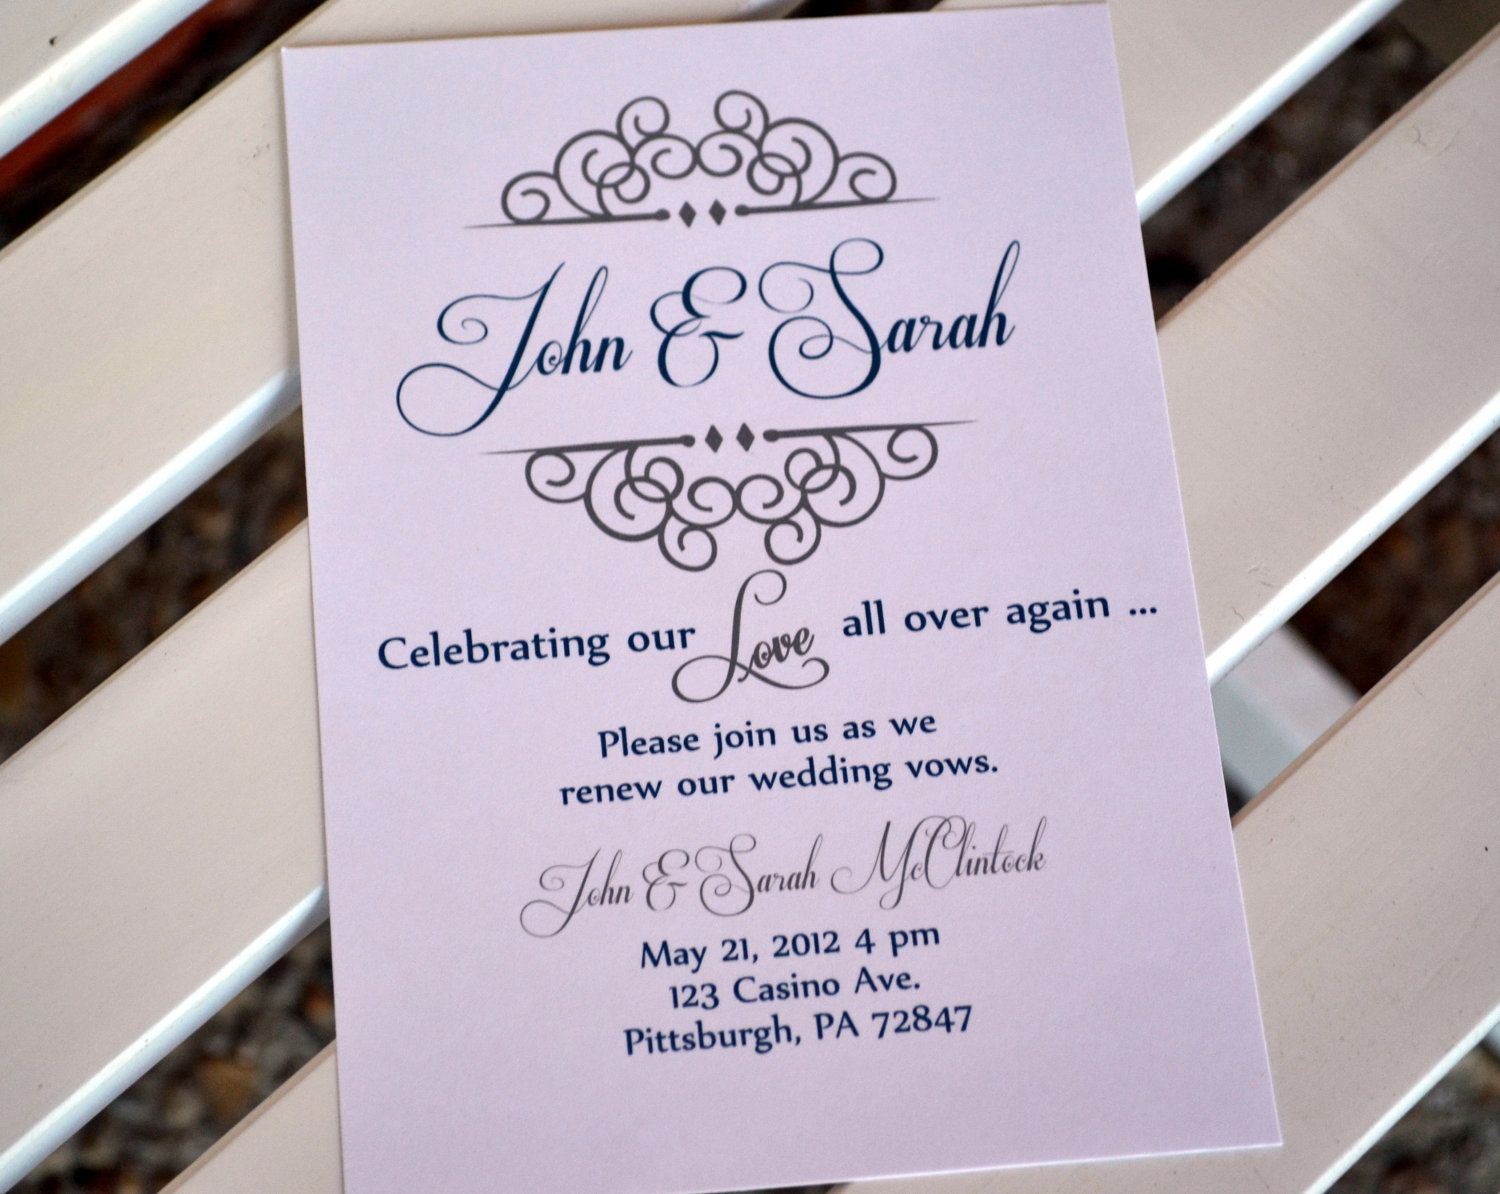 Vow renewal invitation. Anniversary party invitation. Celebrating ...